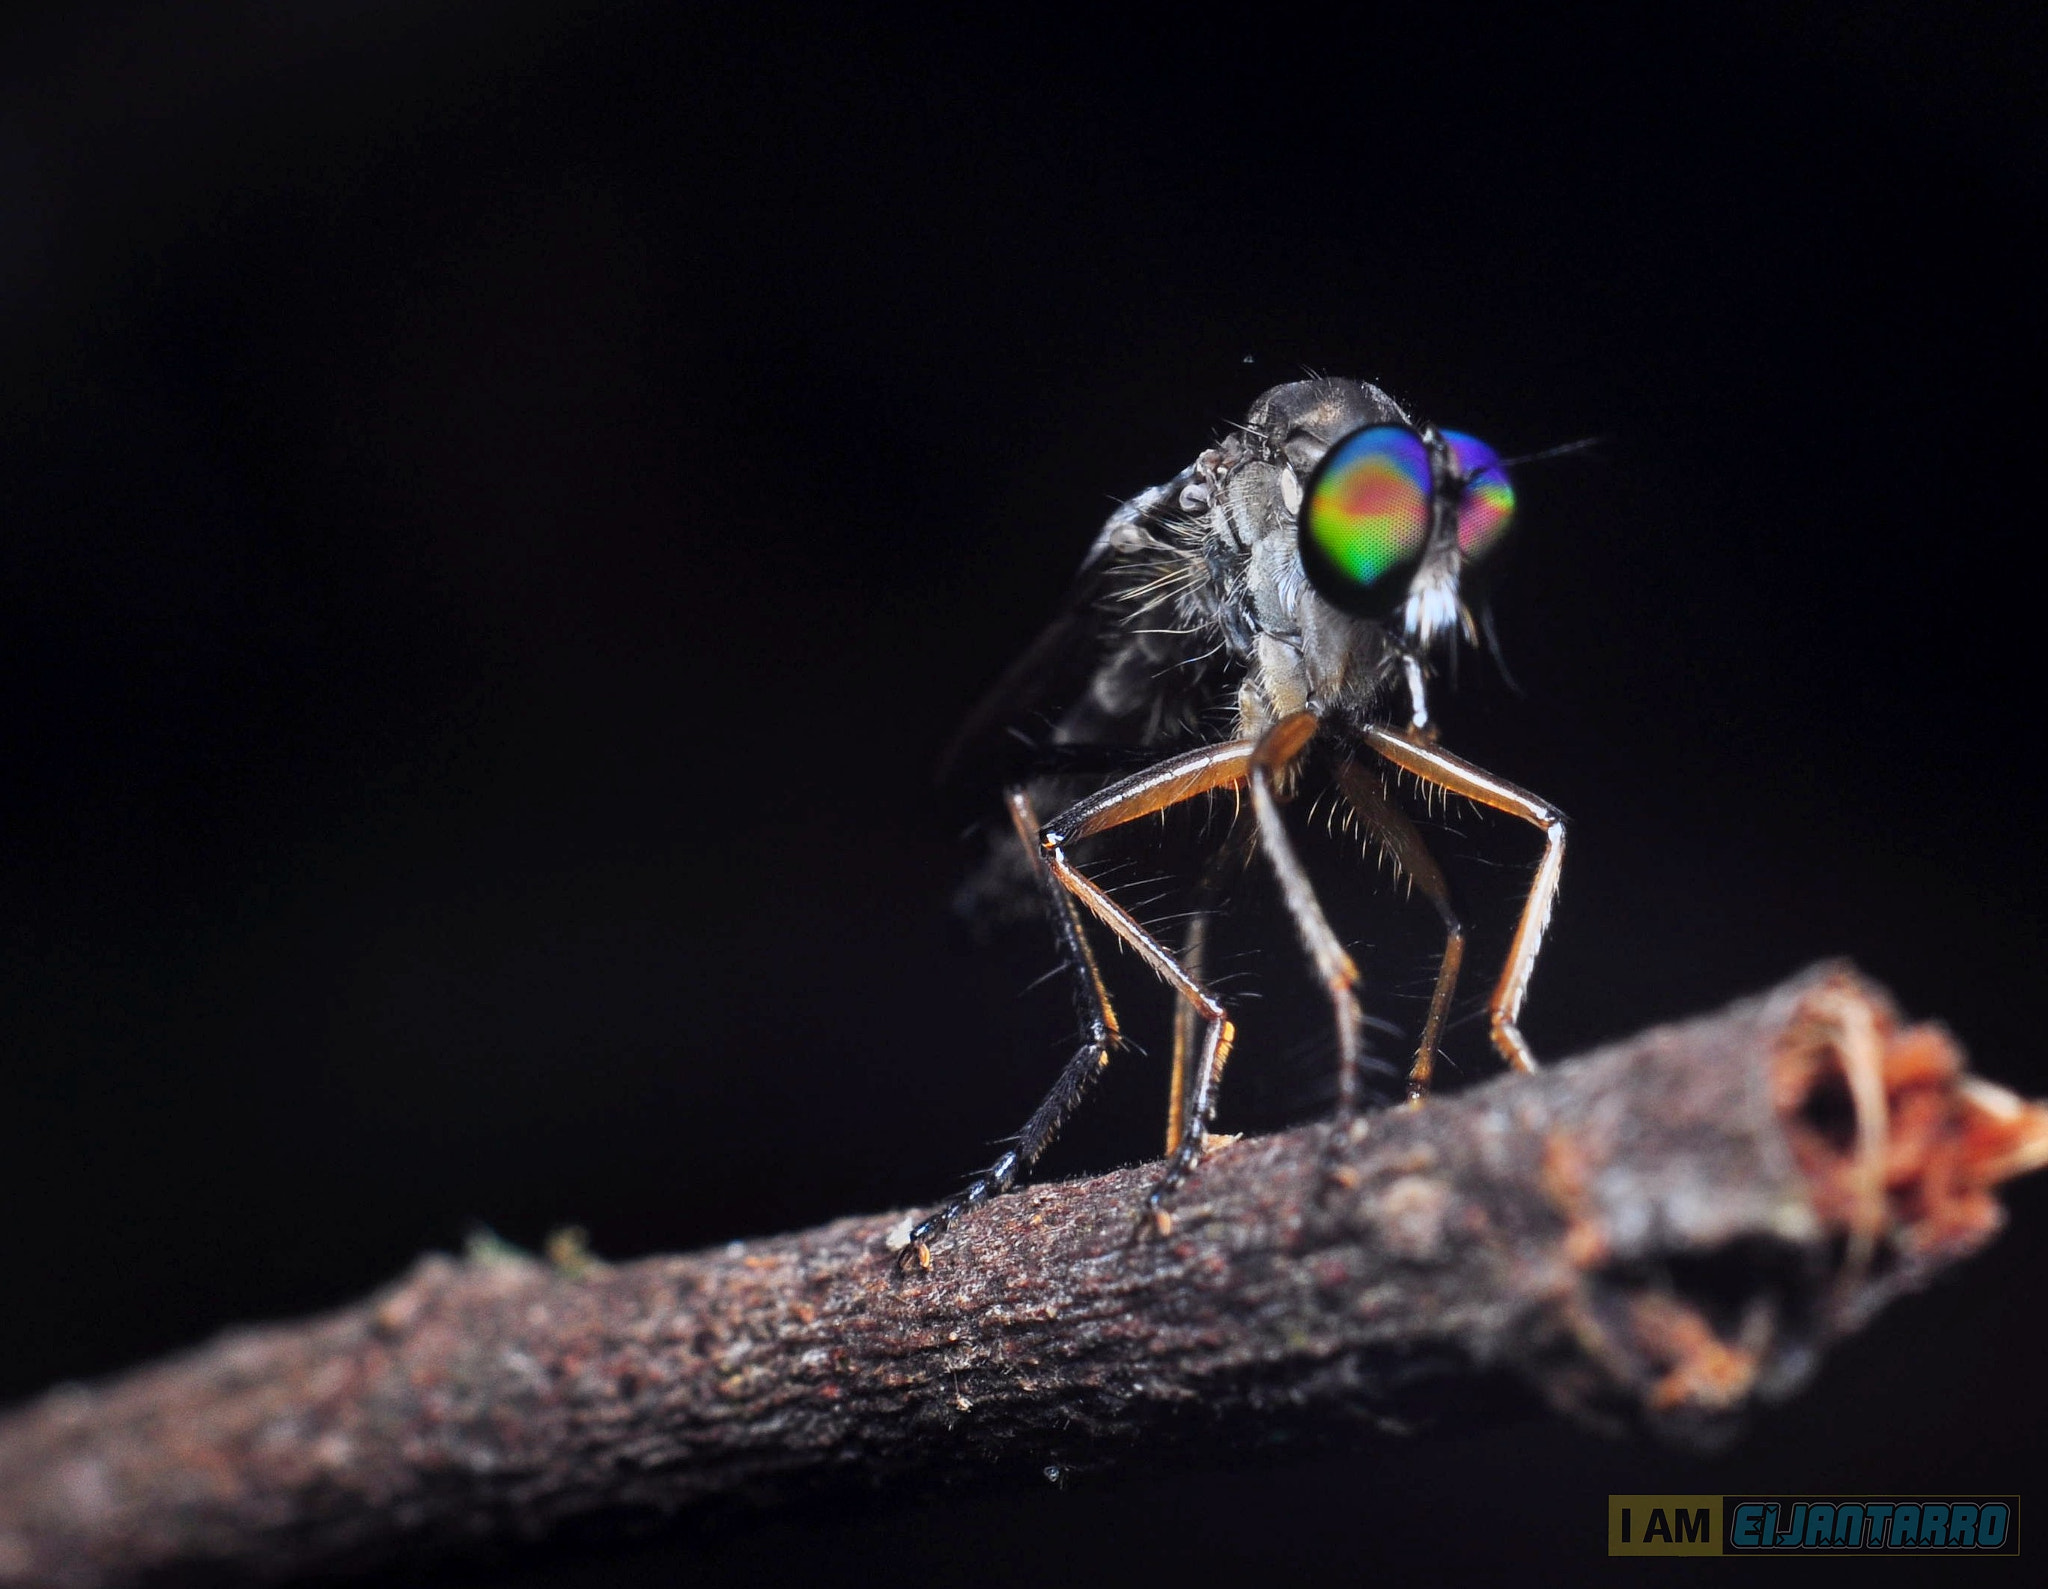 Photograph colourfull robberfly eye by Eijan Tarro on 500px